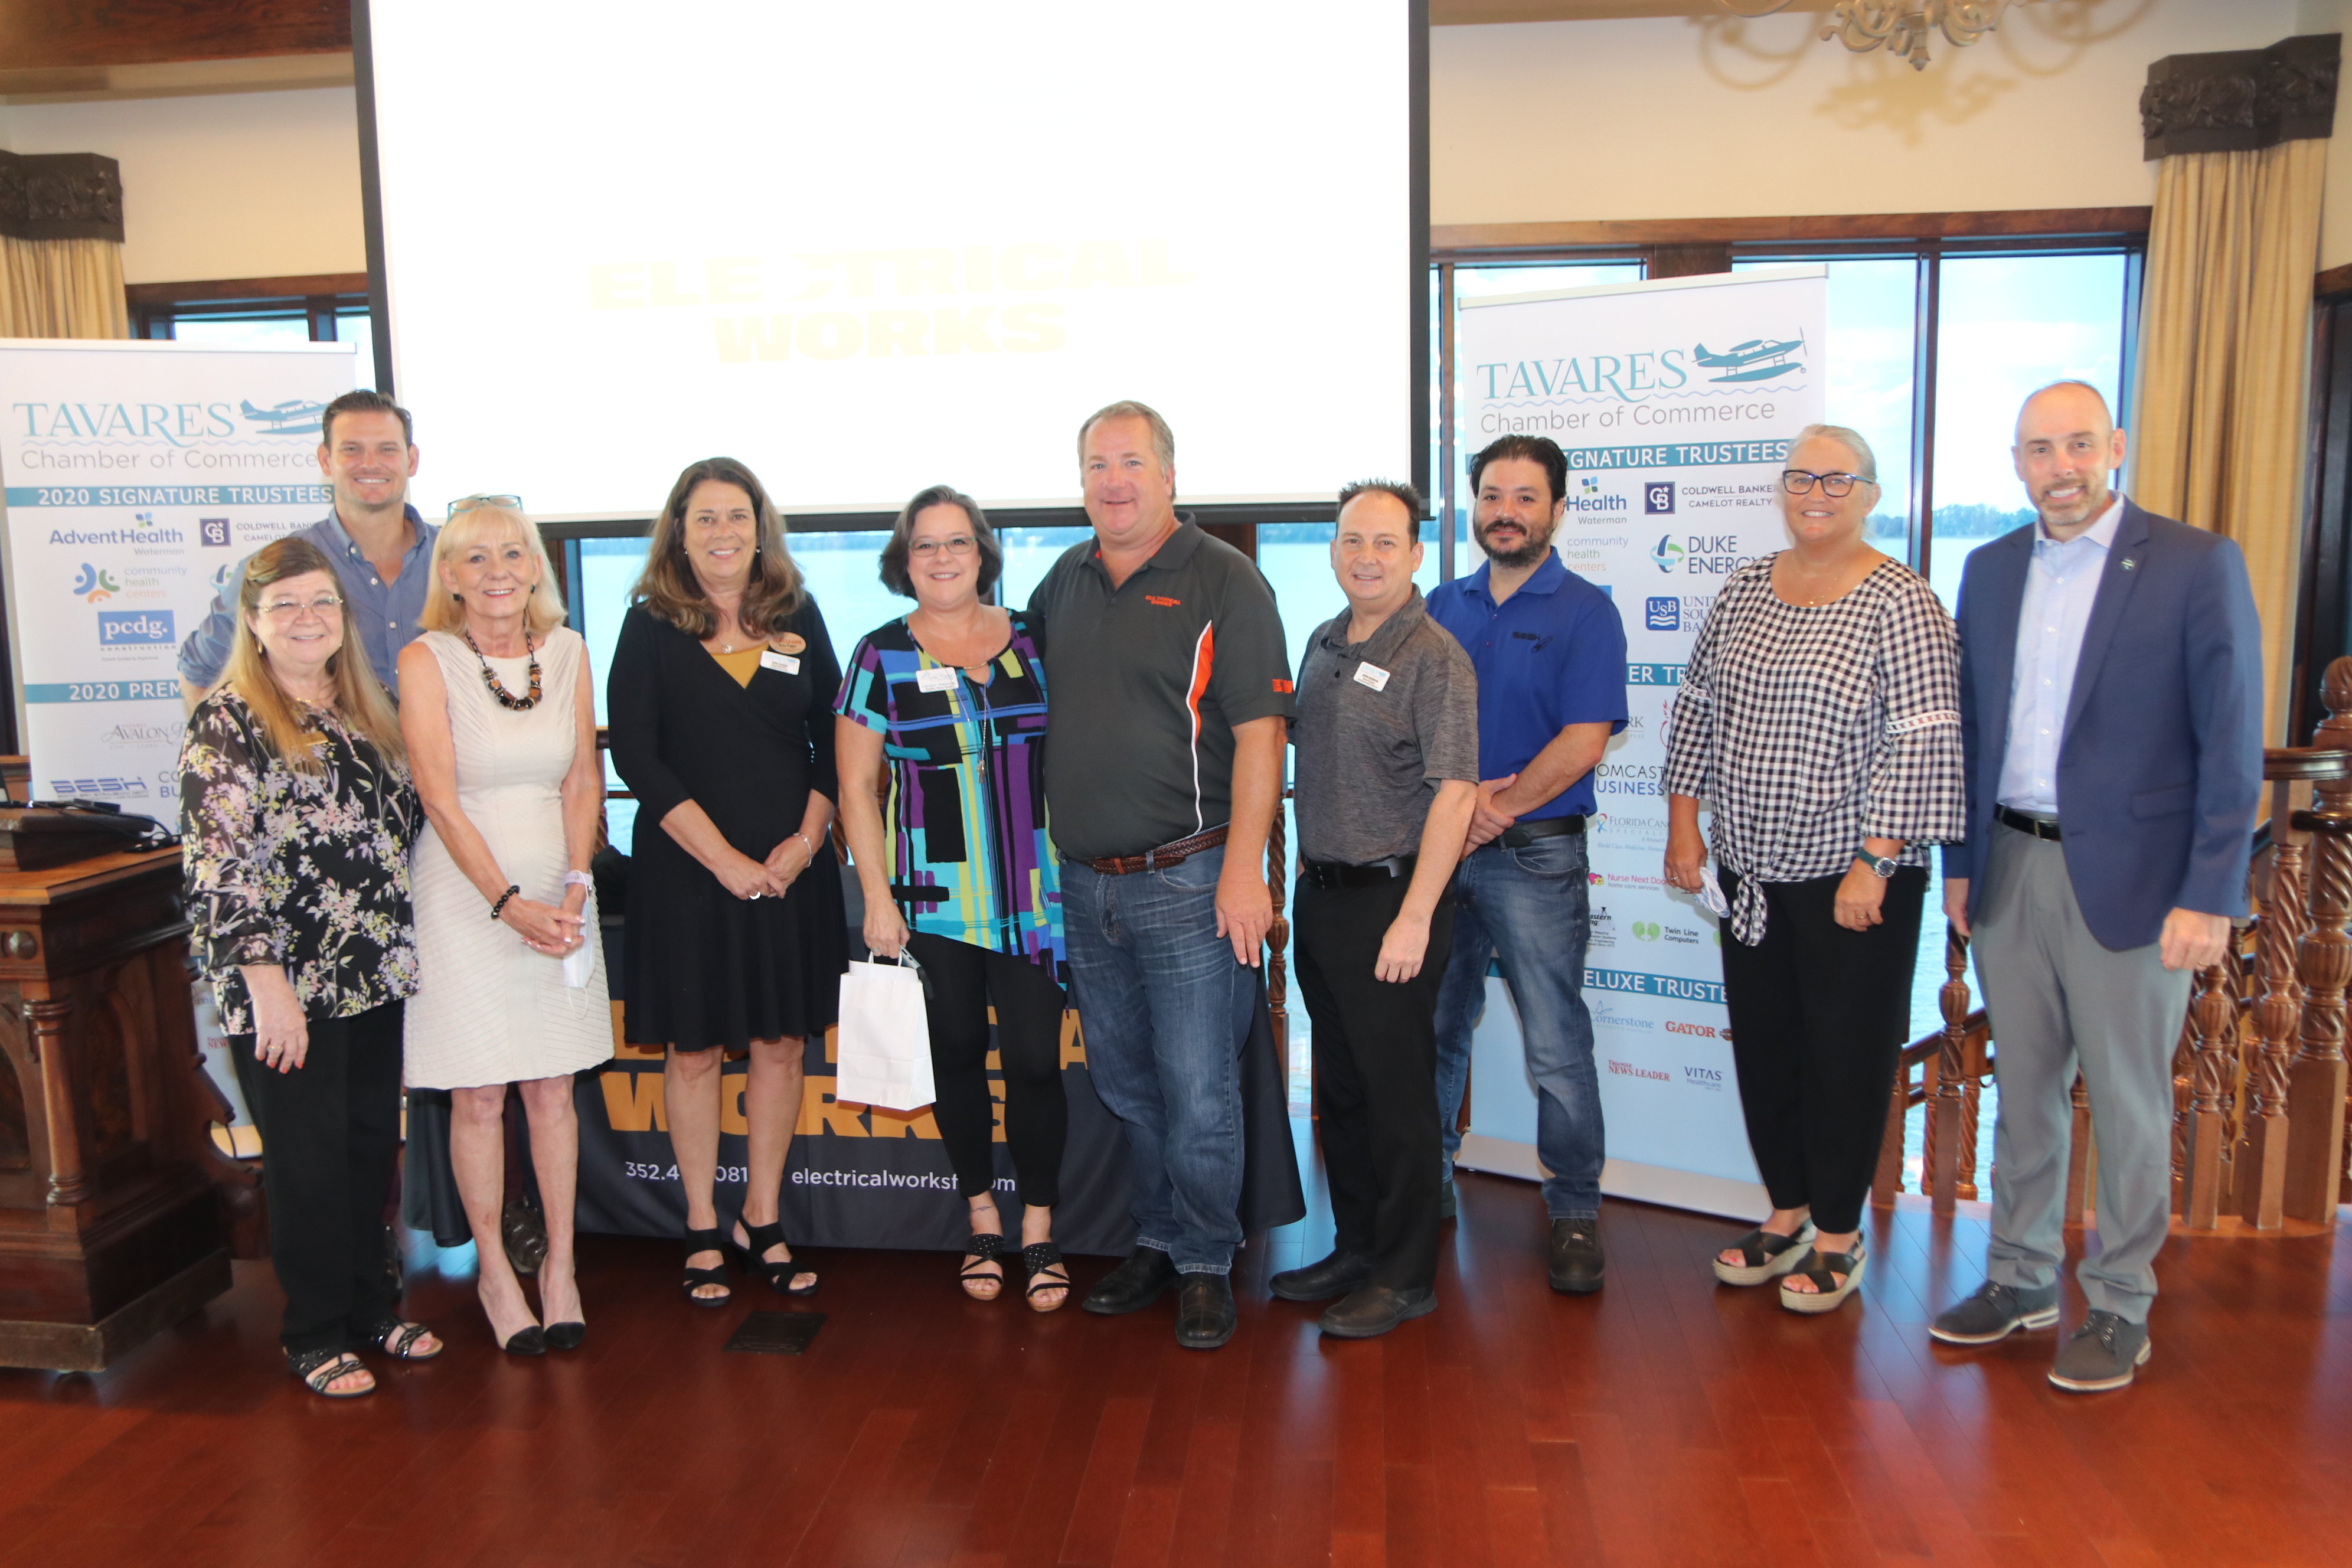 Tavares Chamber Board & Guests